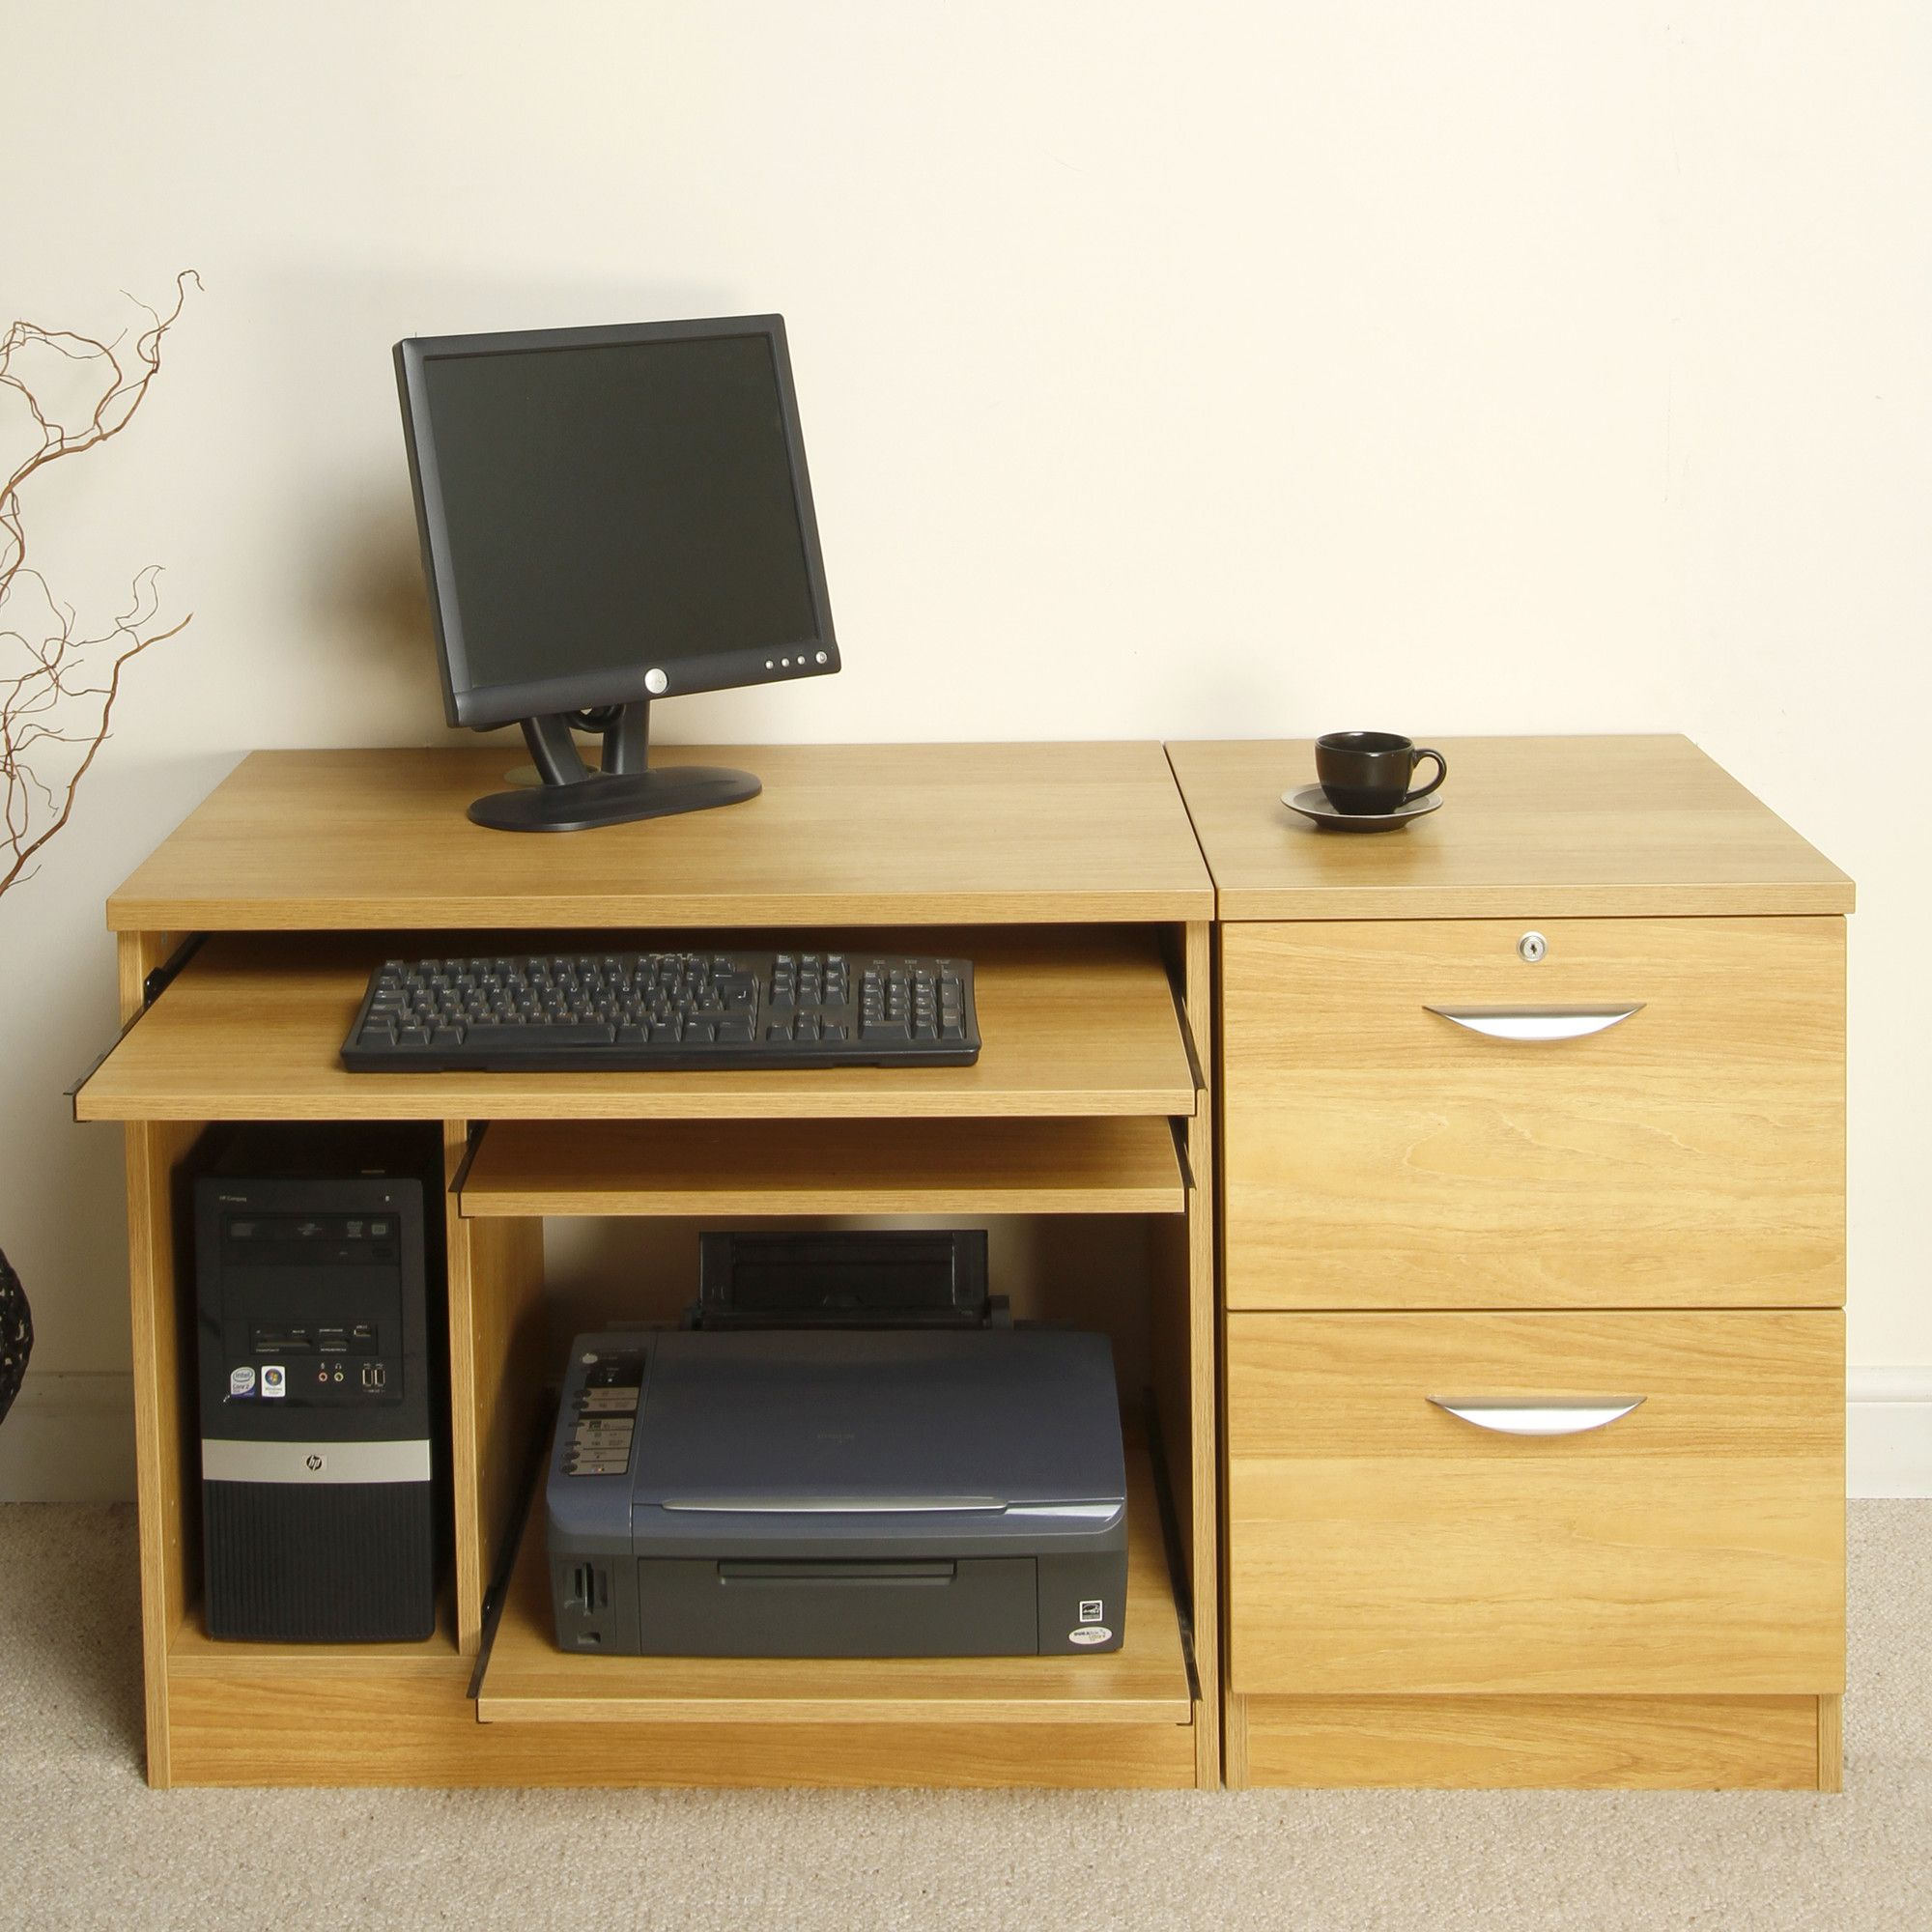 Enduro Home Office Desk / Workstation with Inbuilt Filing Cabinet and Printer / CPU Storage - Warm Oak at Tesco Direct